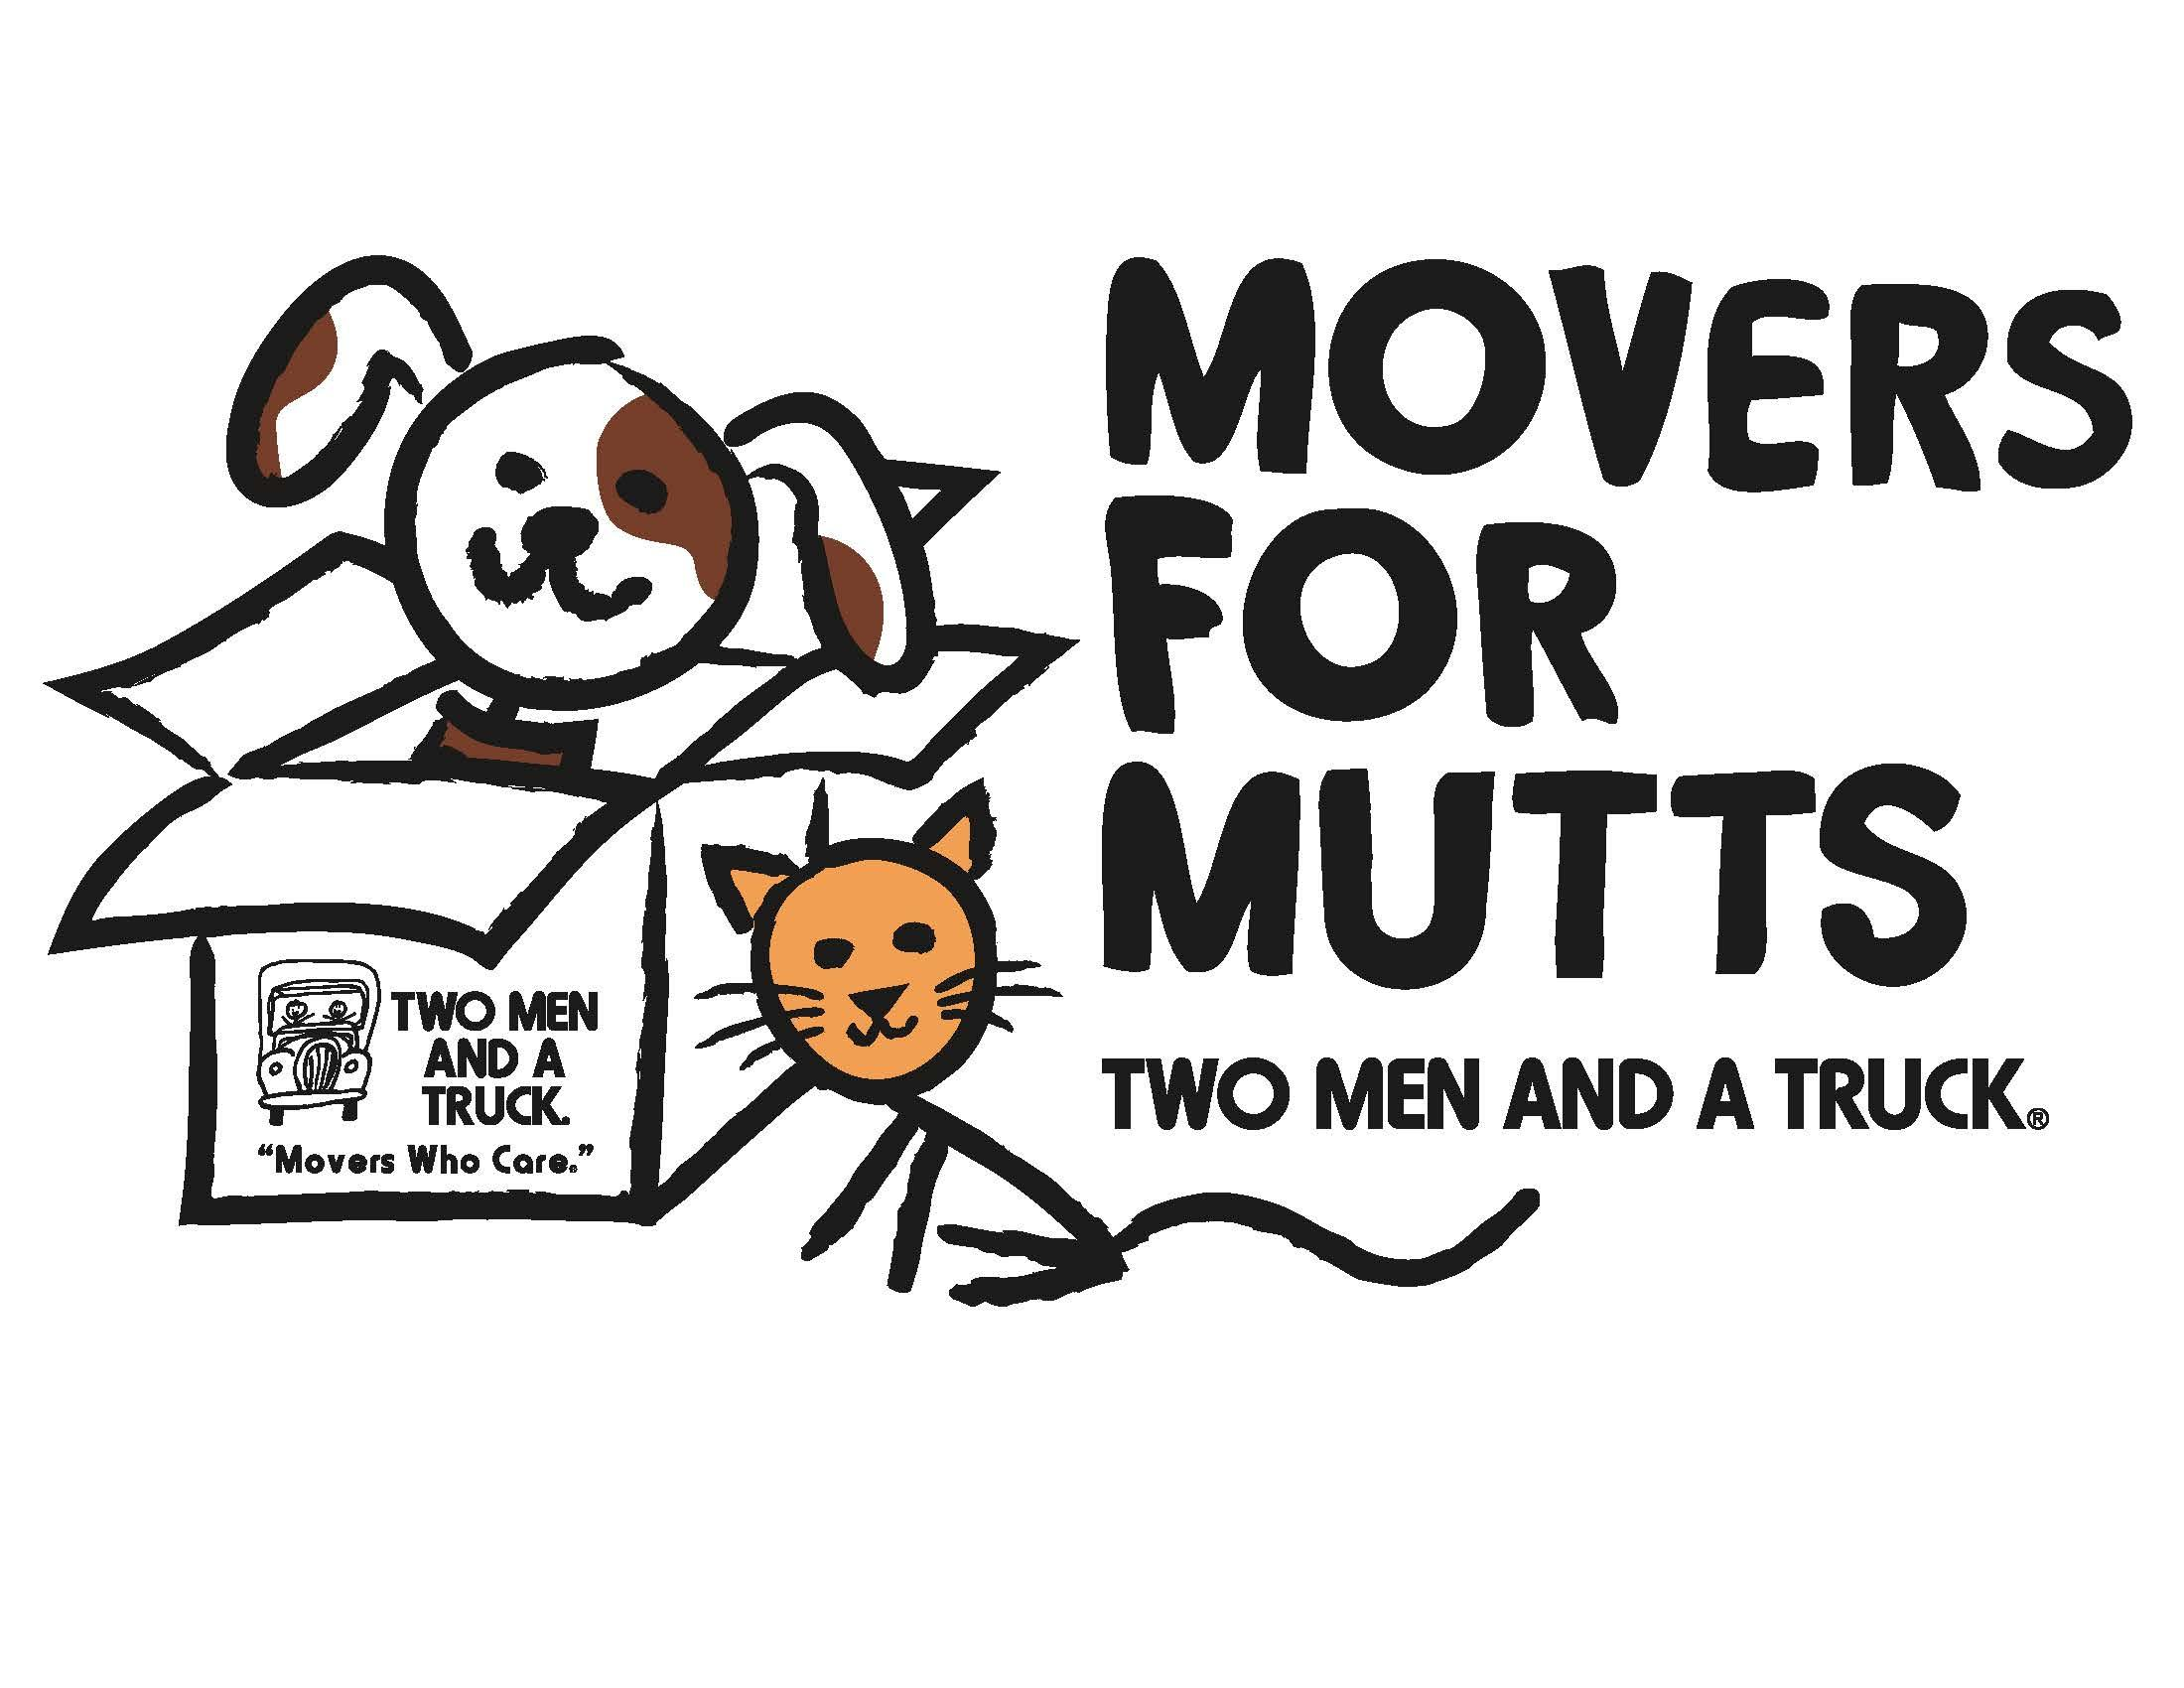 Movers for Mutts